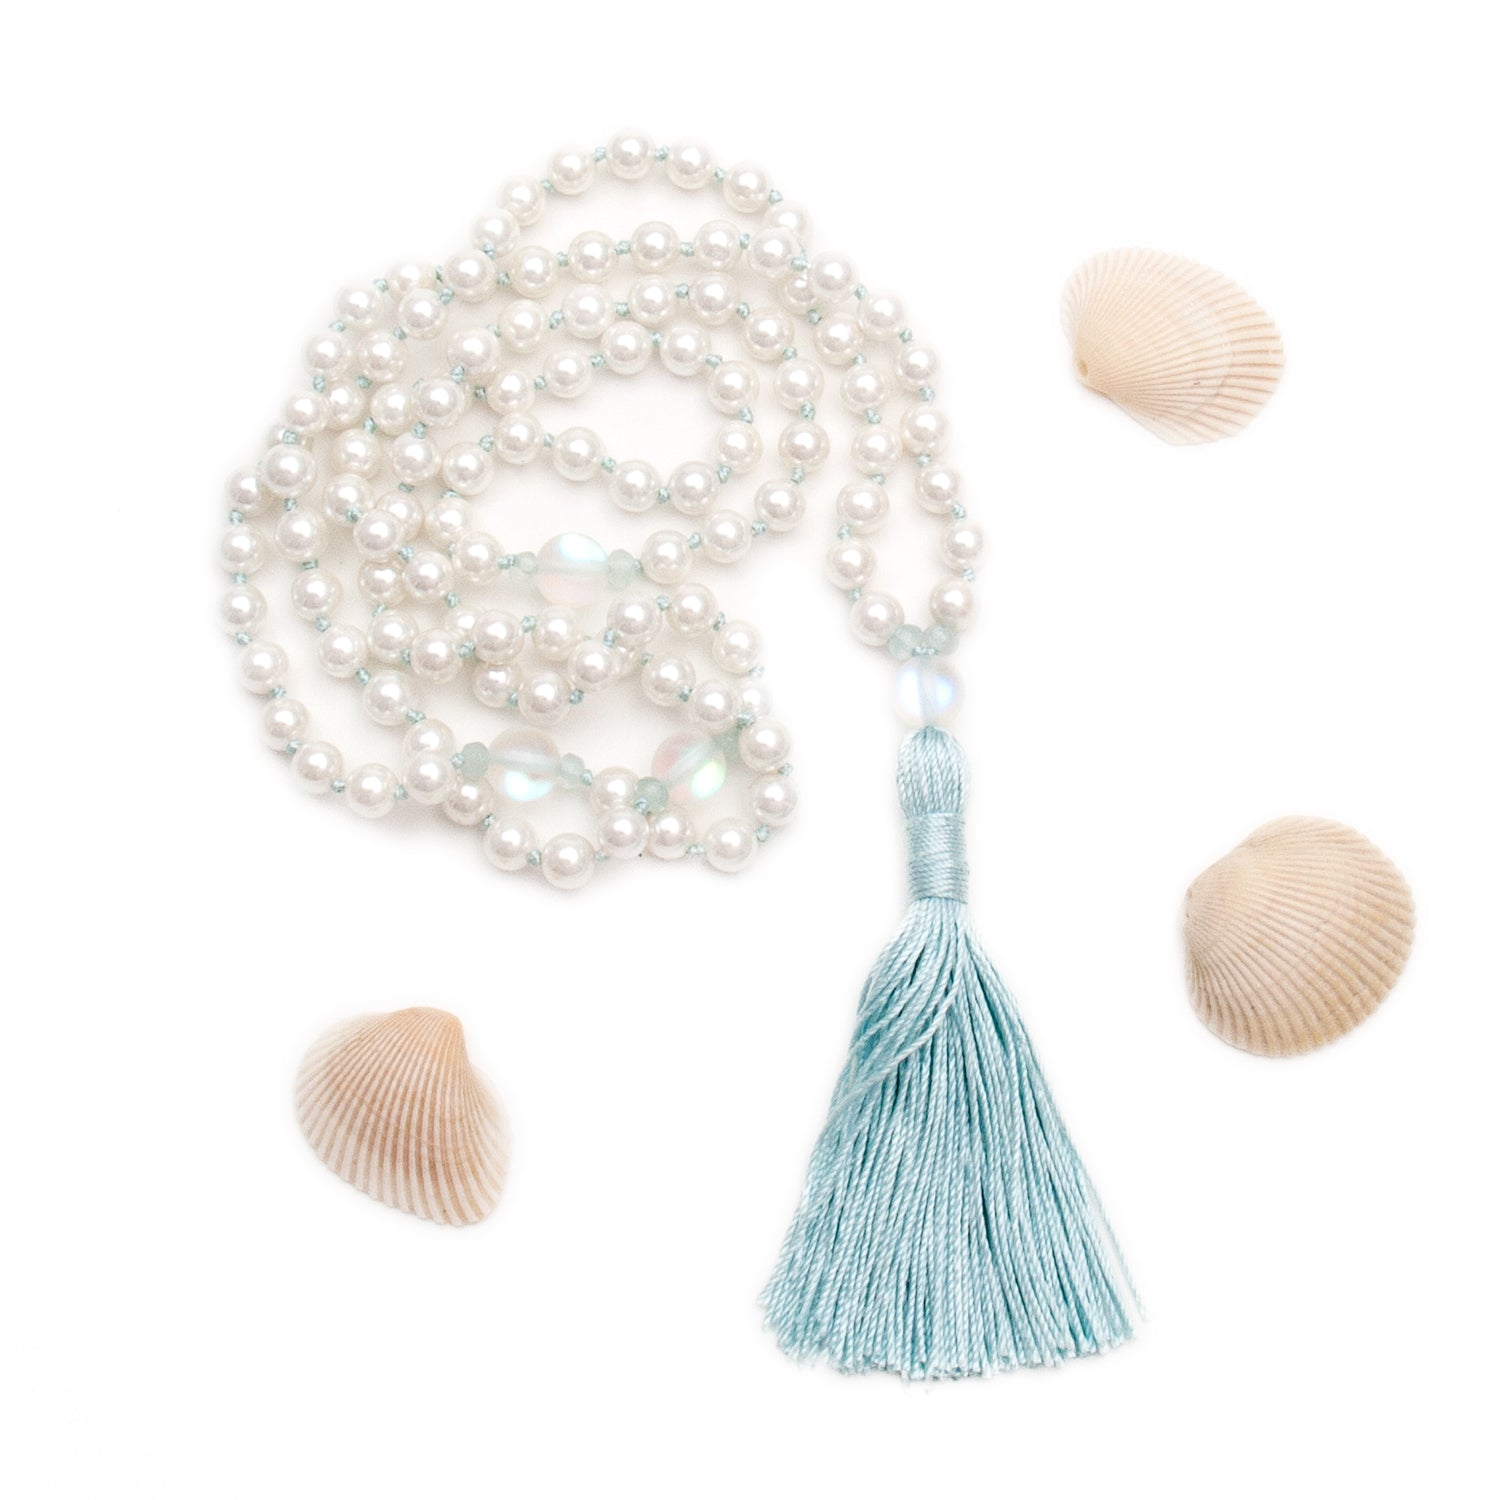 Mermaid Mala - Pearl & Quartz